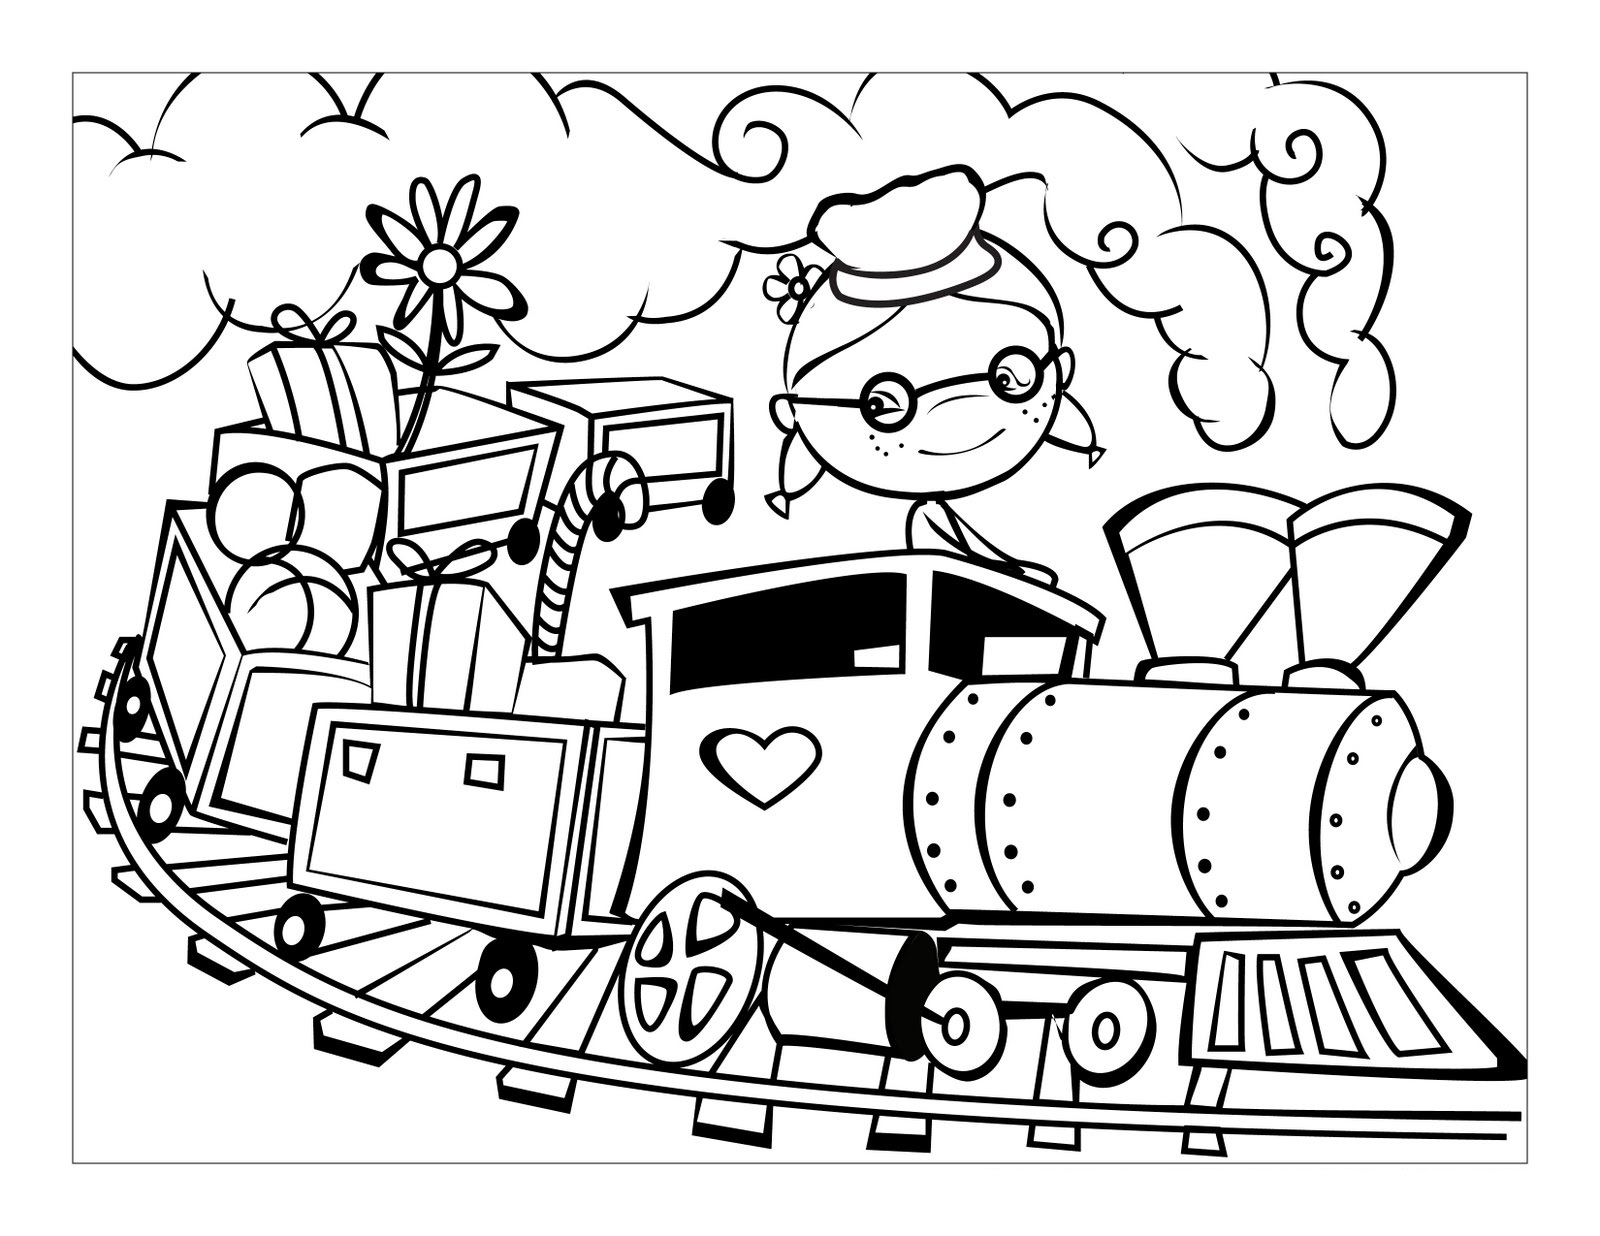 coloring pages trains free printable train coloring pages for kids cool2bkids coloring trains pages